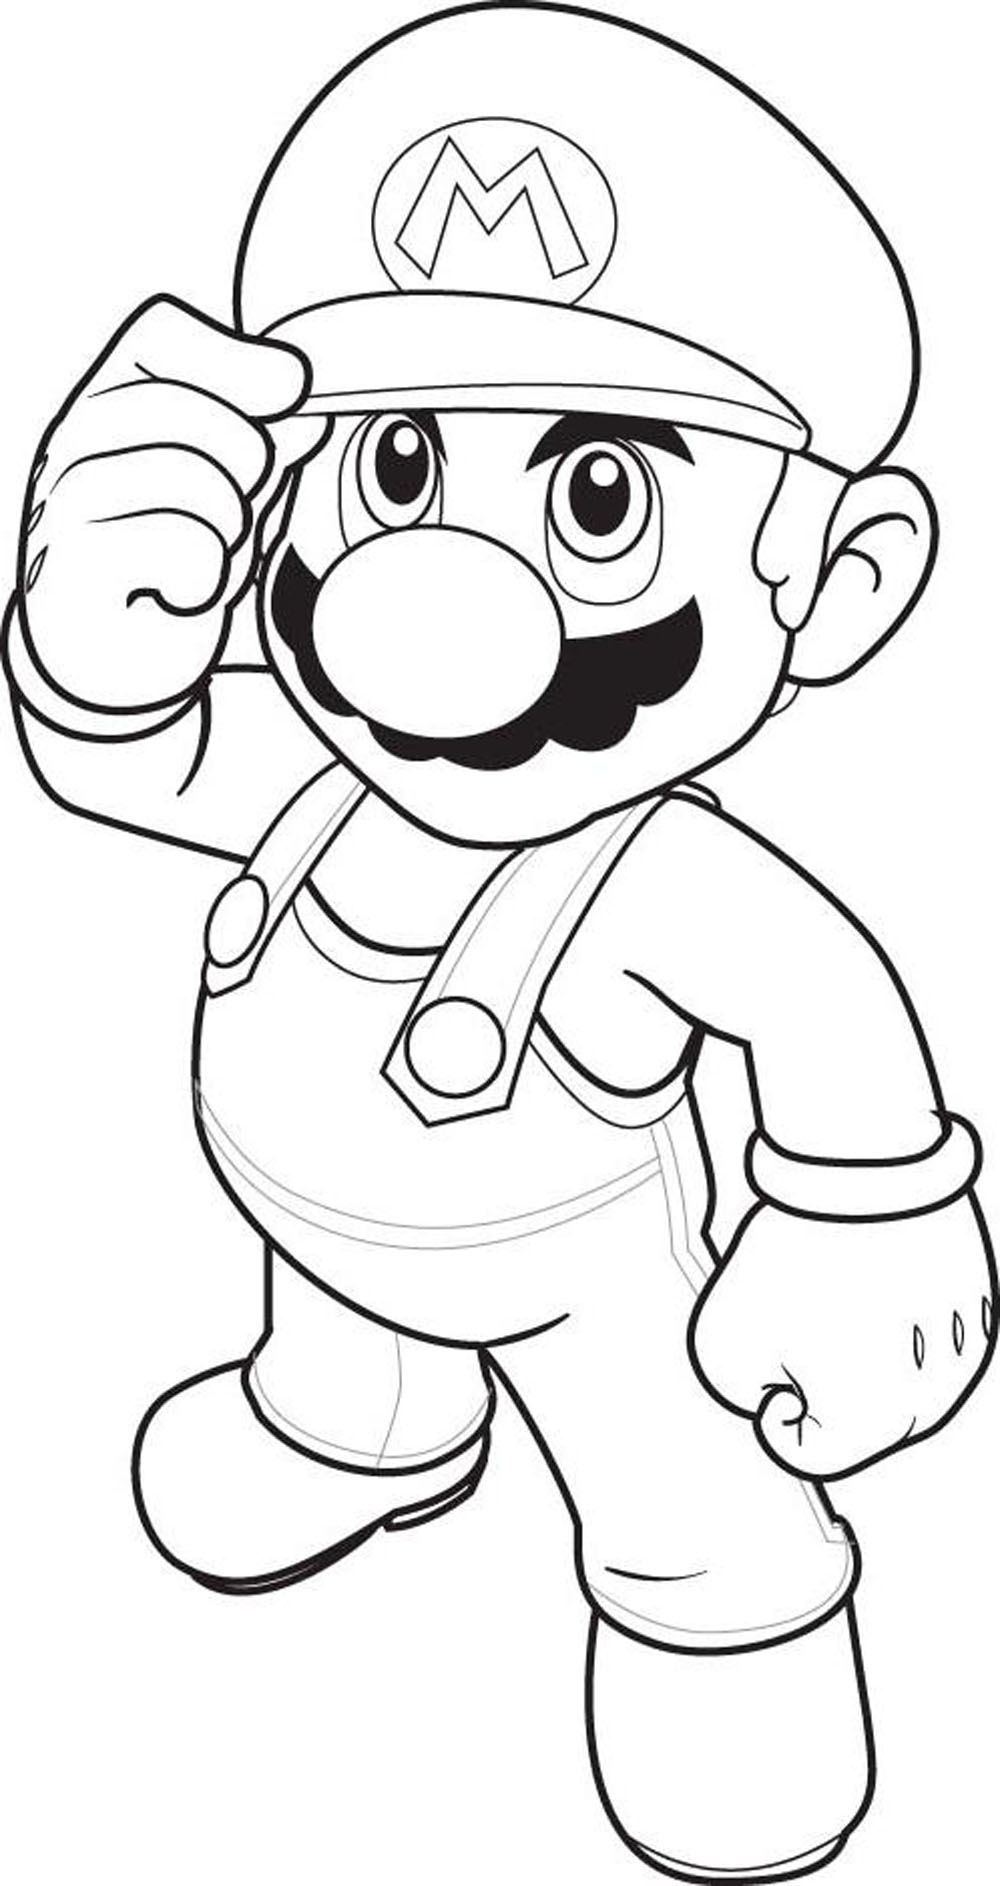 Mario Coloring Pages - coloring.rocks!